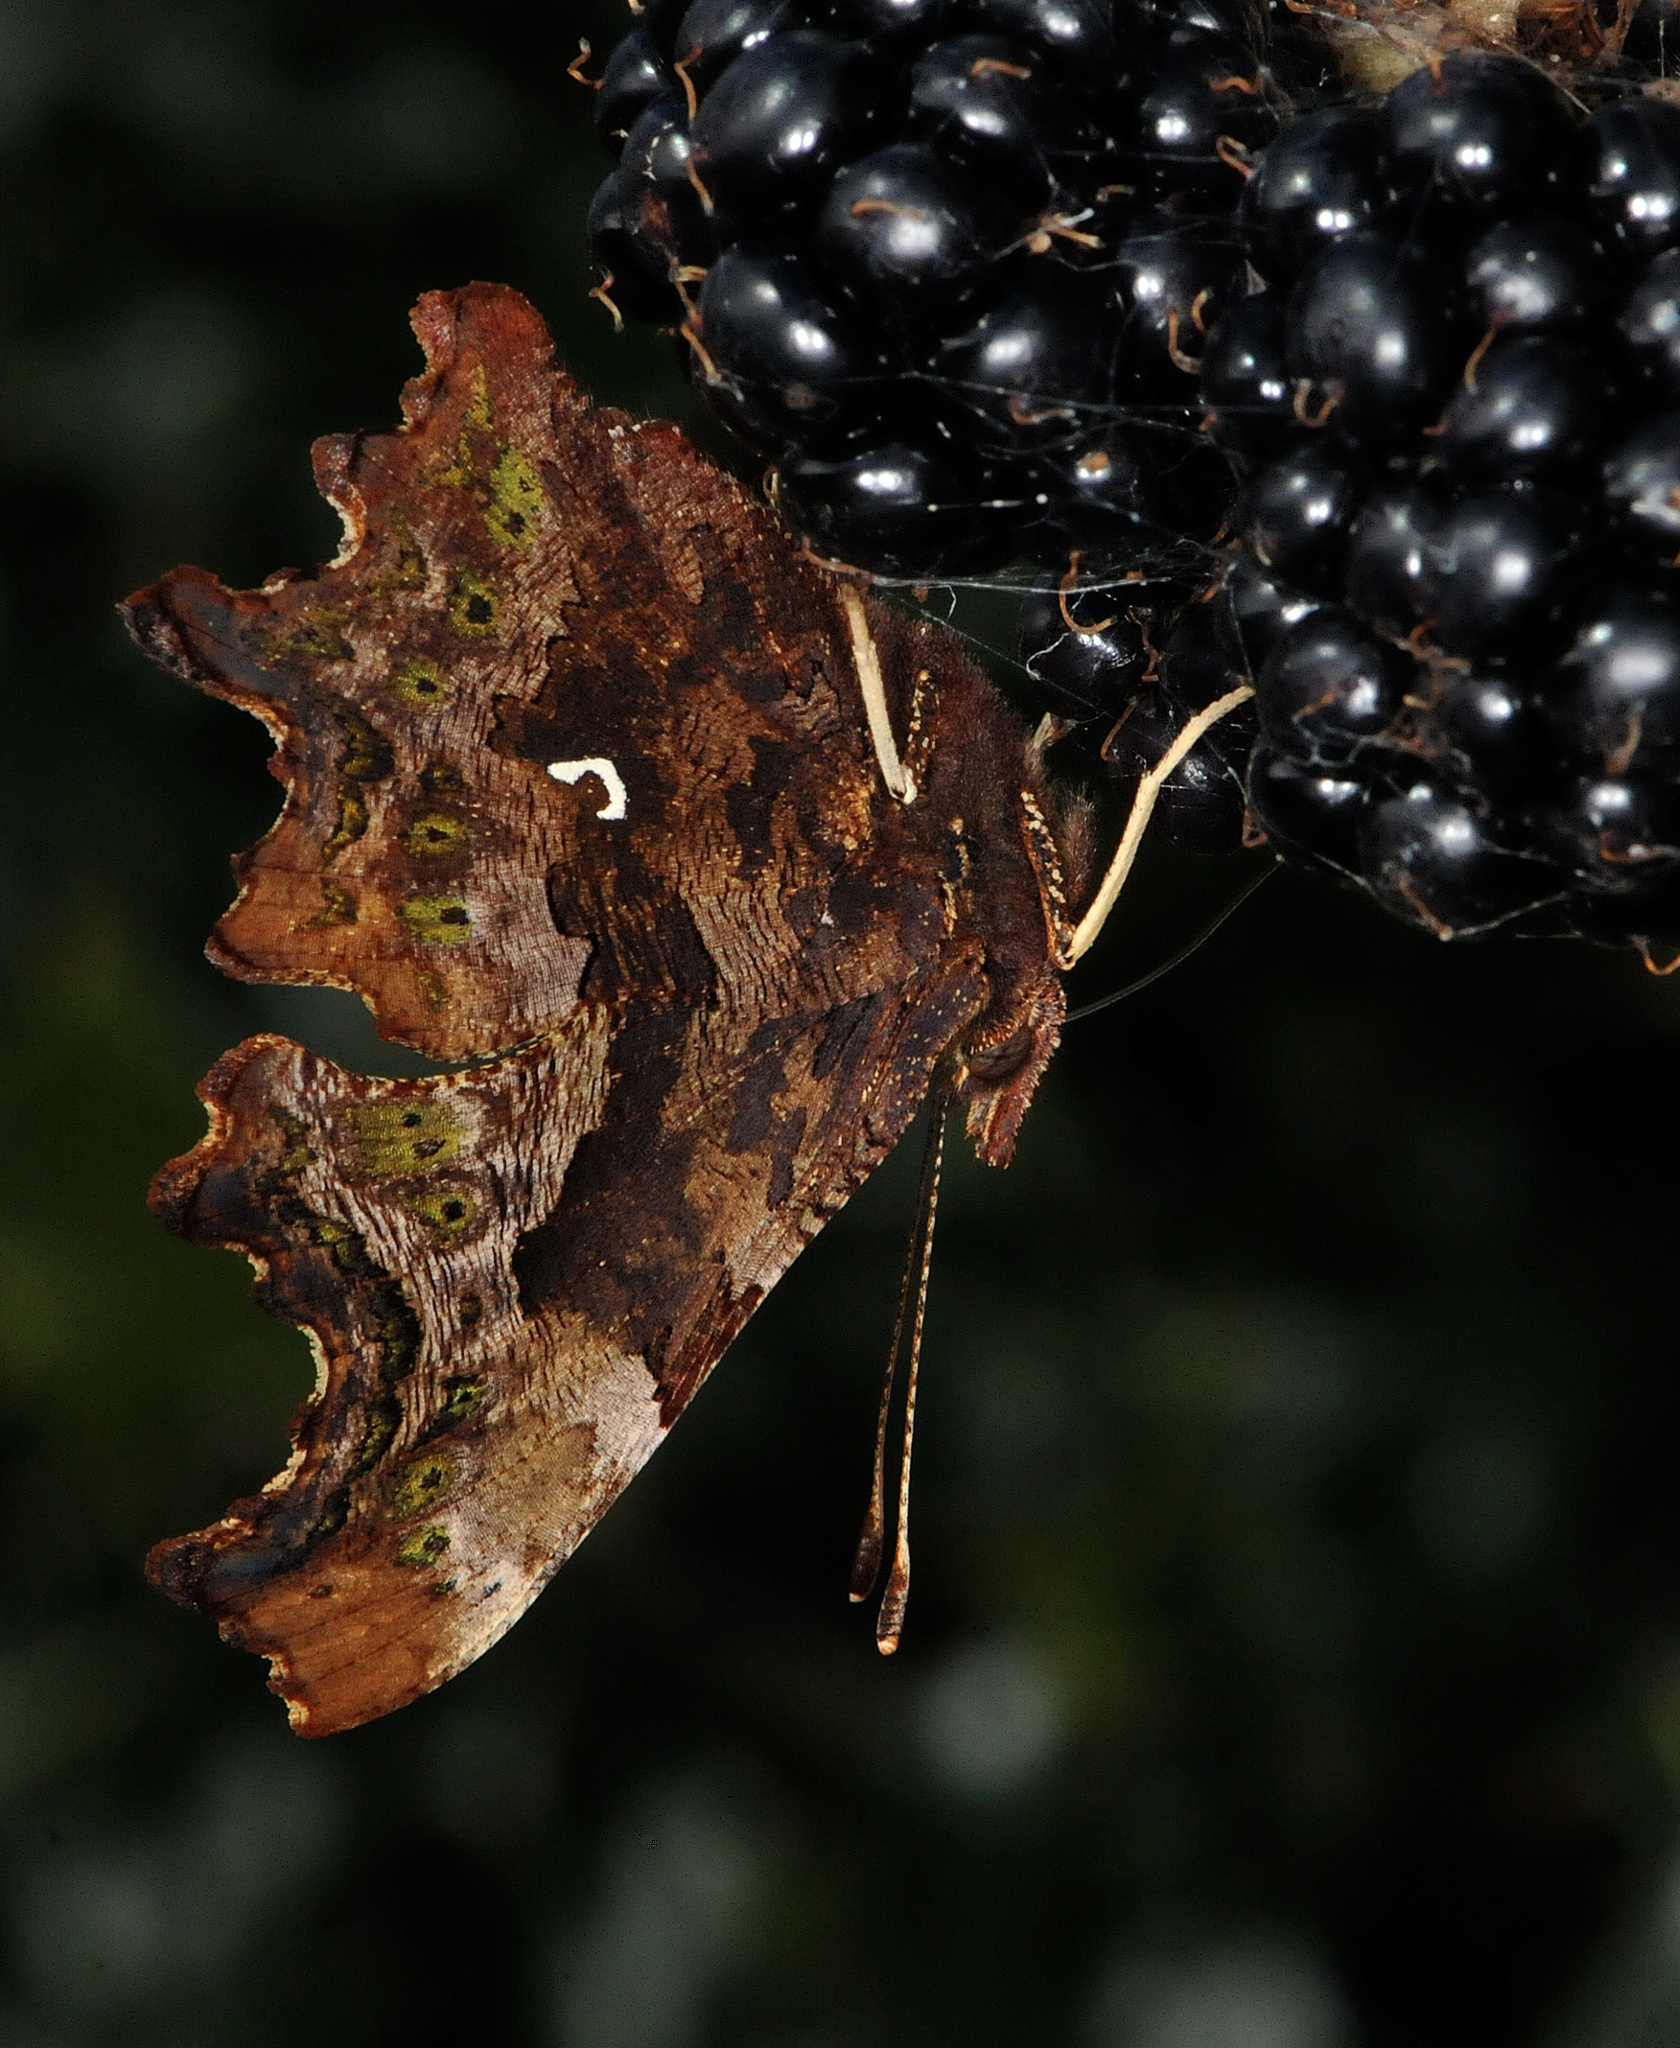 Comma by Paul.Taylor